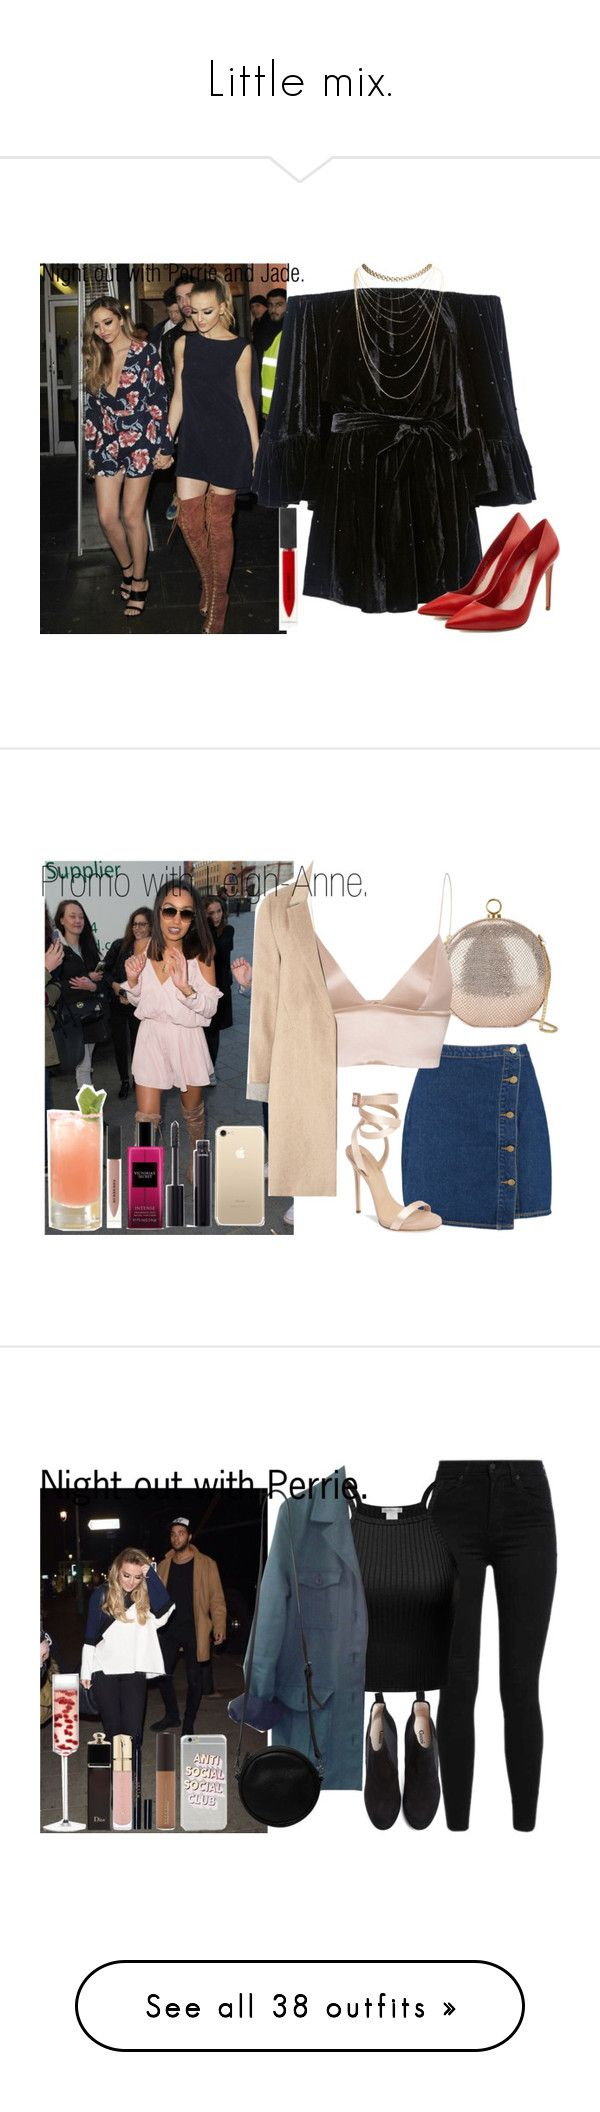 """""""Little mix."""" by carla-limitededition ❤ liked on Polyvore featuring littlemix, JadeThrilwall, JesyNelson, perrieedwards, LeighAnnePinnock, C/MEO COLLECTIVE, Wet Seal, Burberry, Alexander McQueen and Boohoo"""